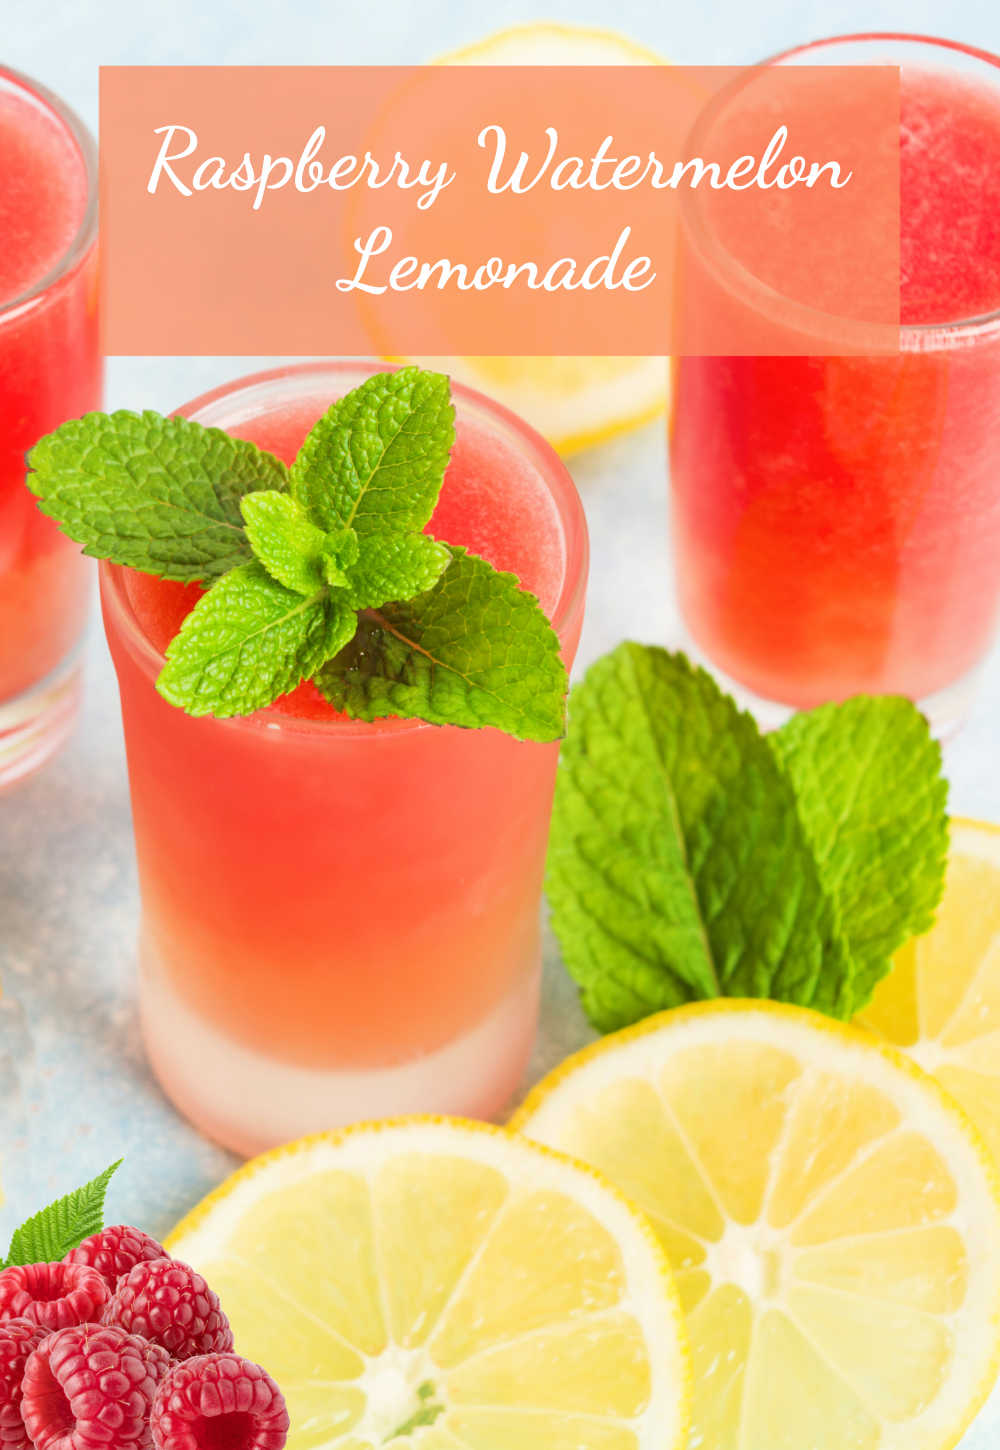 red drink with mint leaves and words Raspberry Watermelon lemonade.